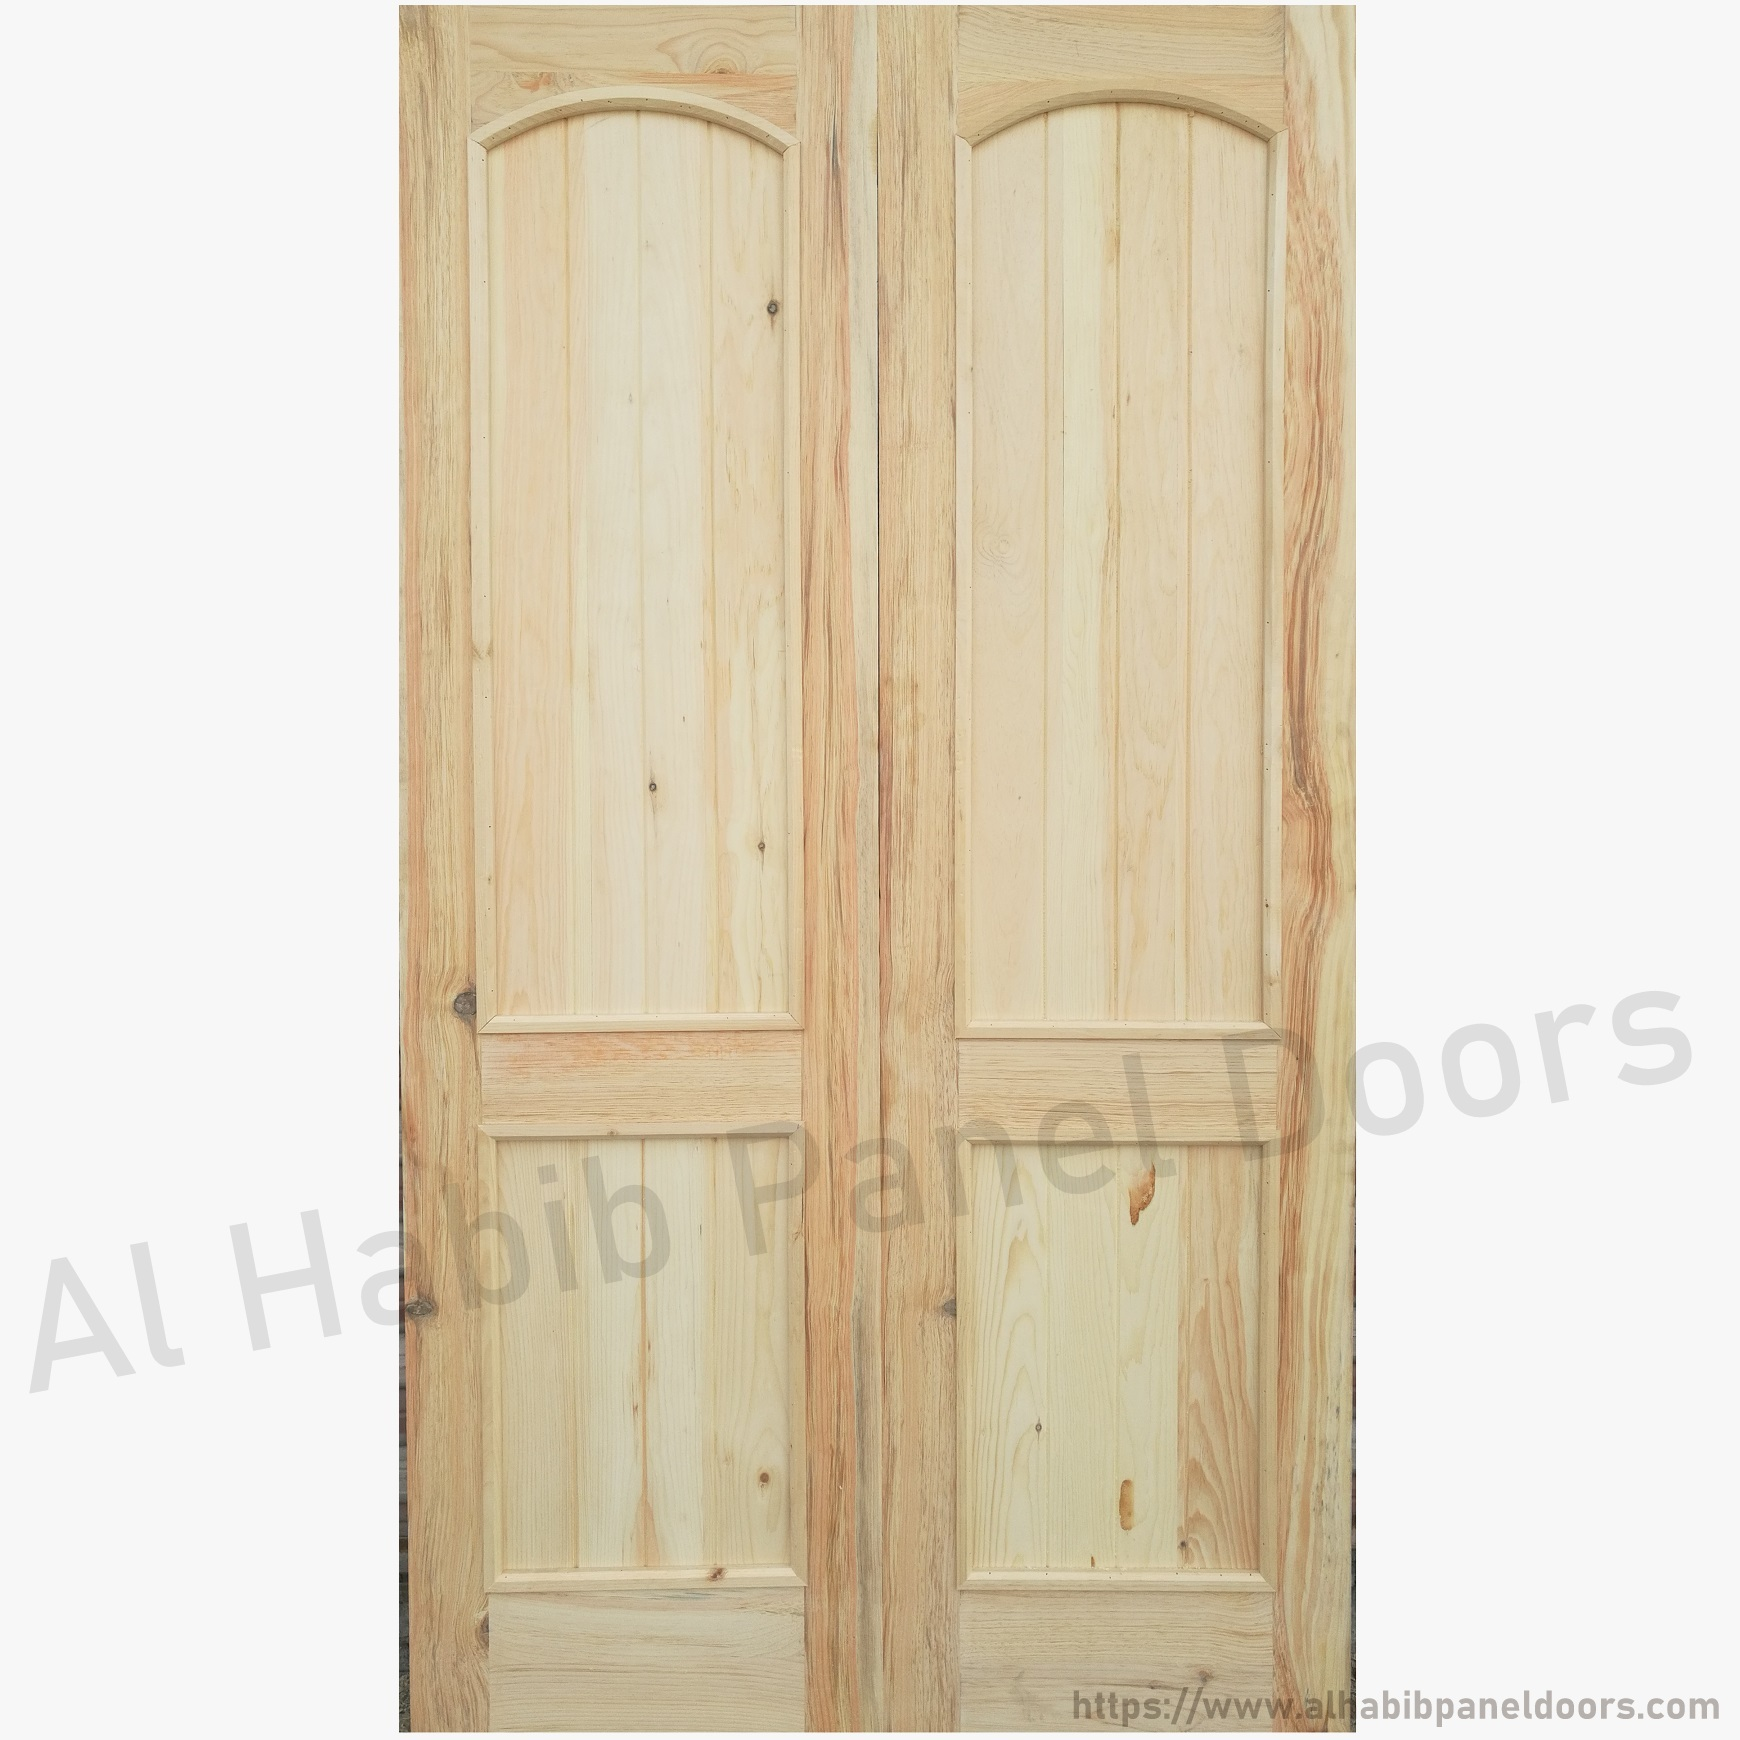 Main Doors Doors Al Habib Panel Doors